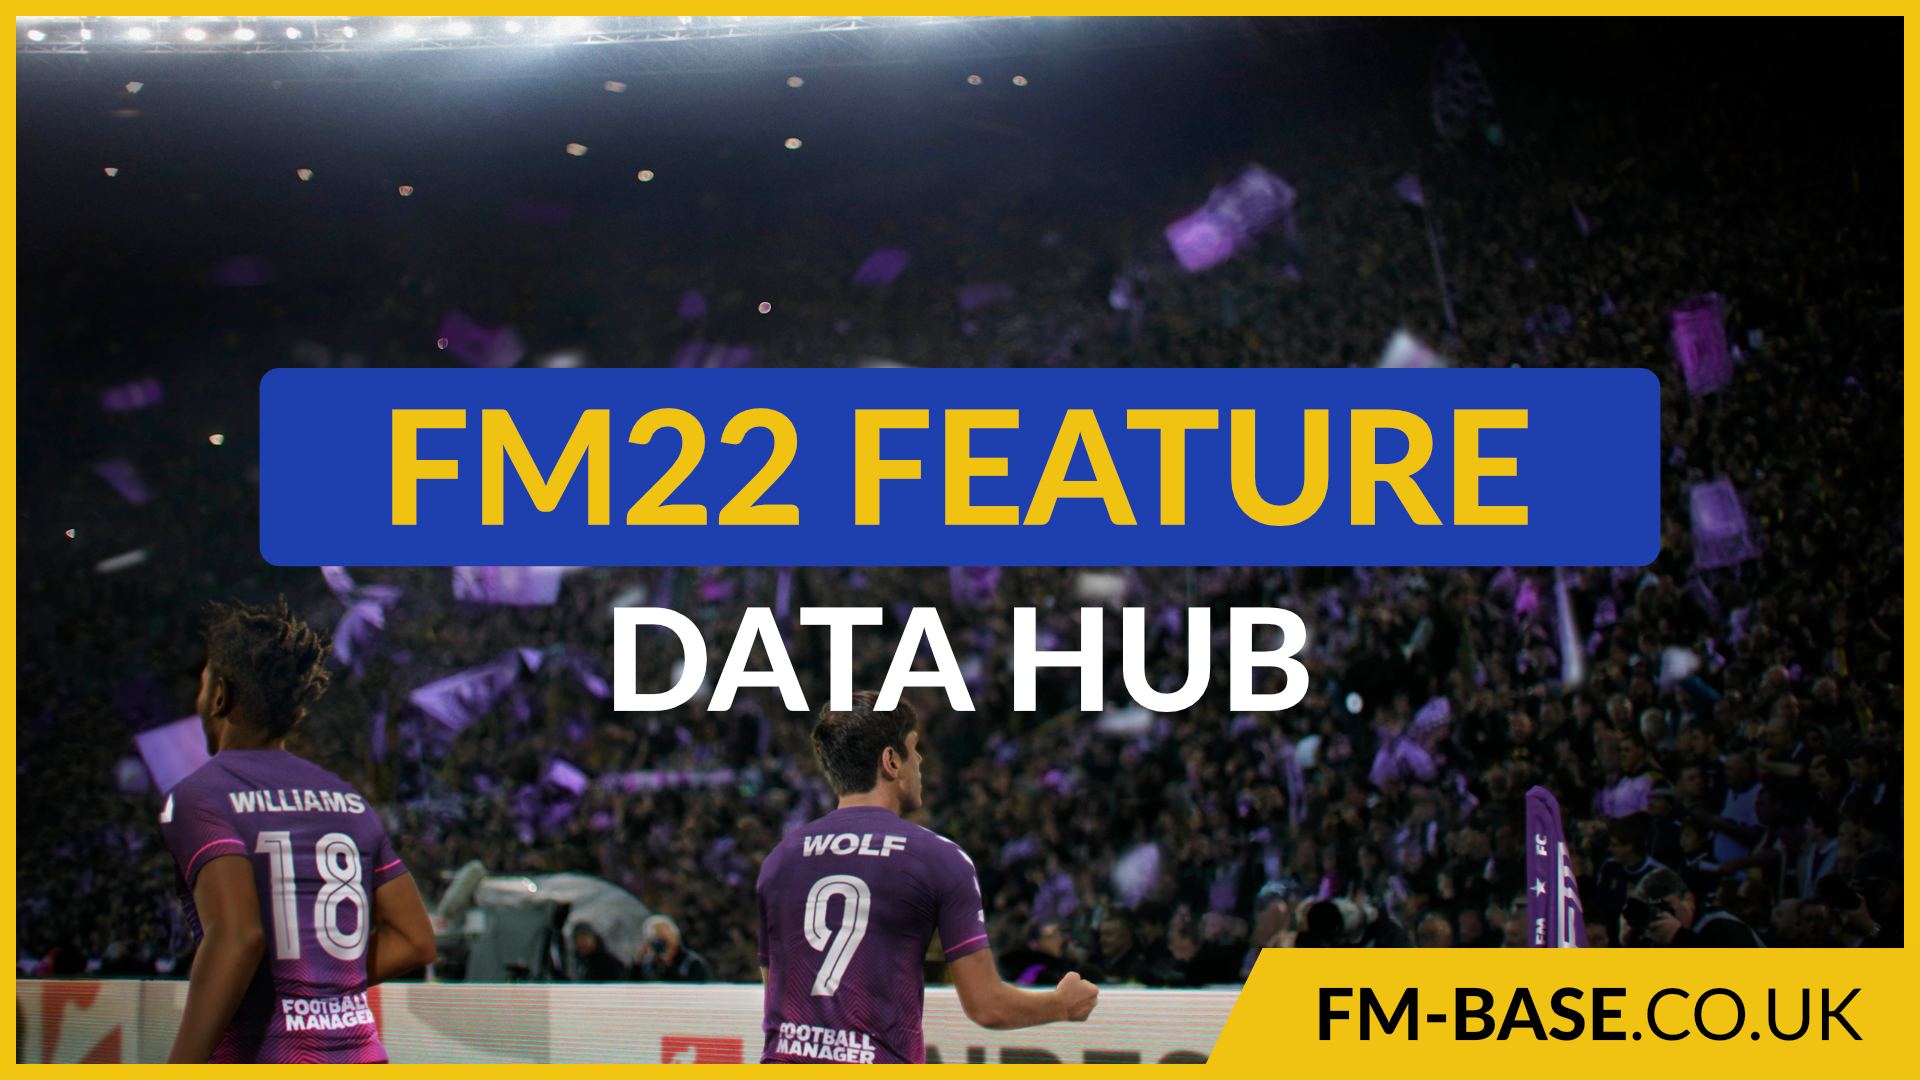 """""""The Data Hub looks set to be an exciting addition to FM22"""" feature image"""